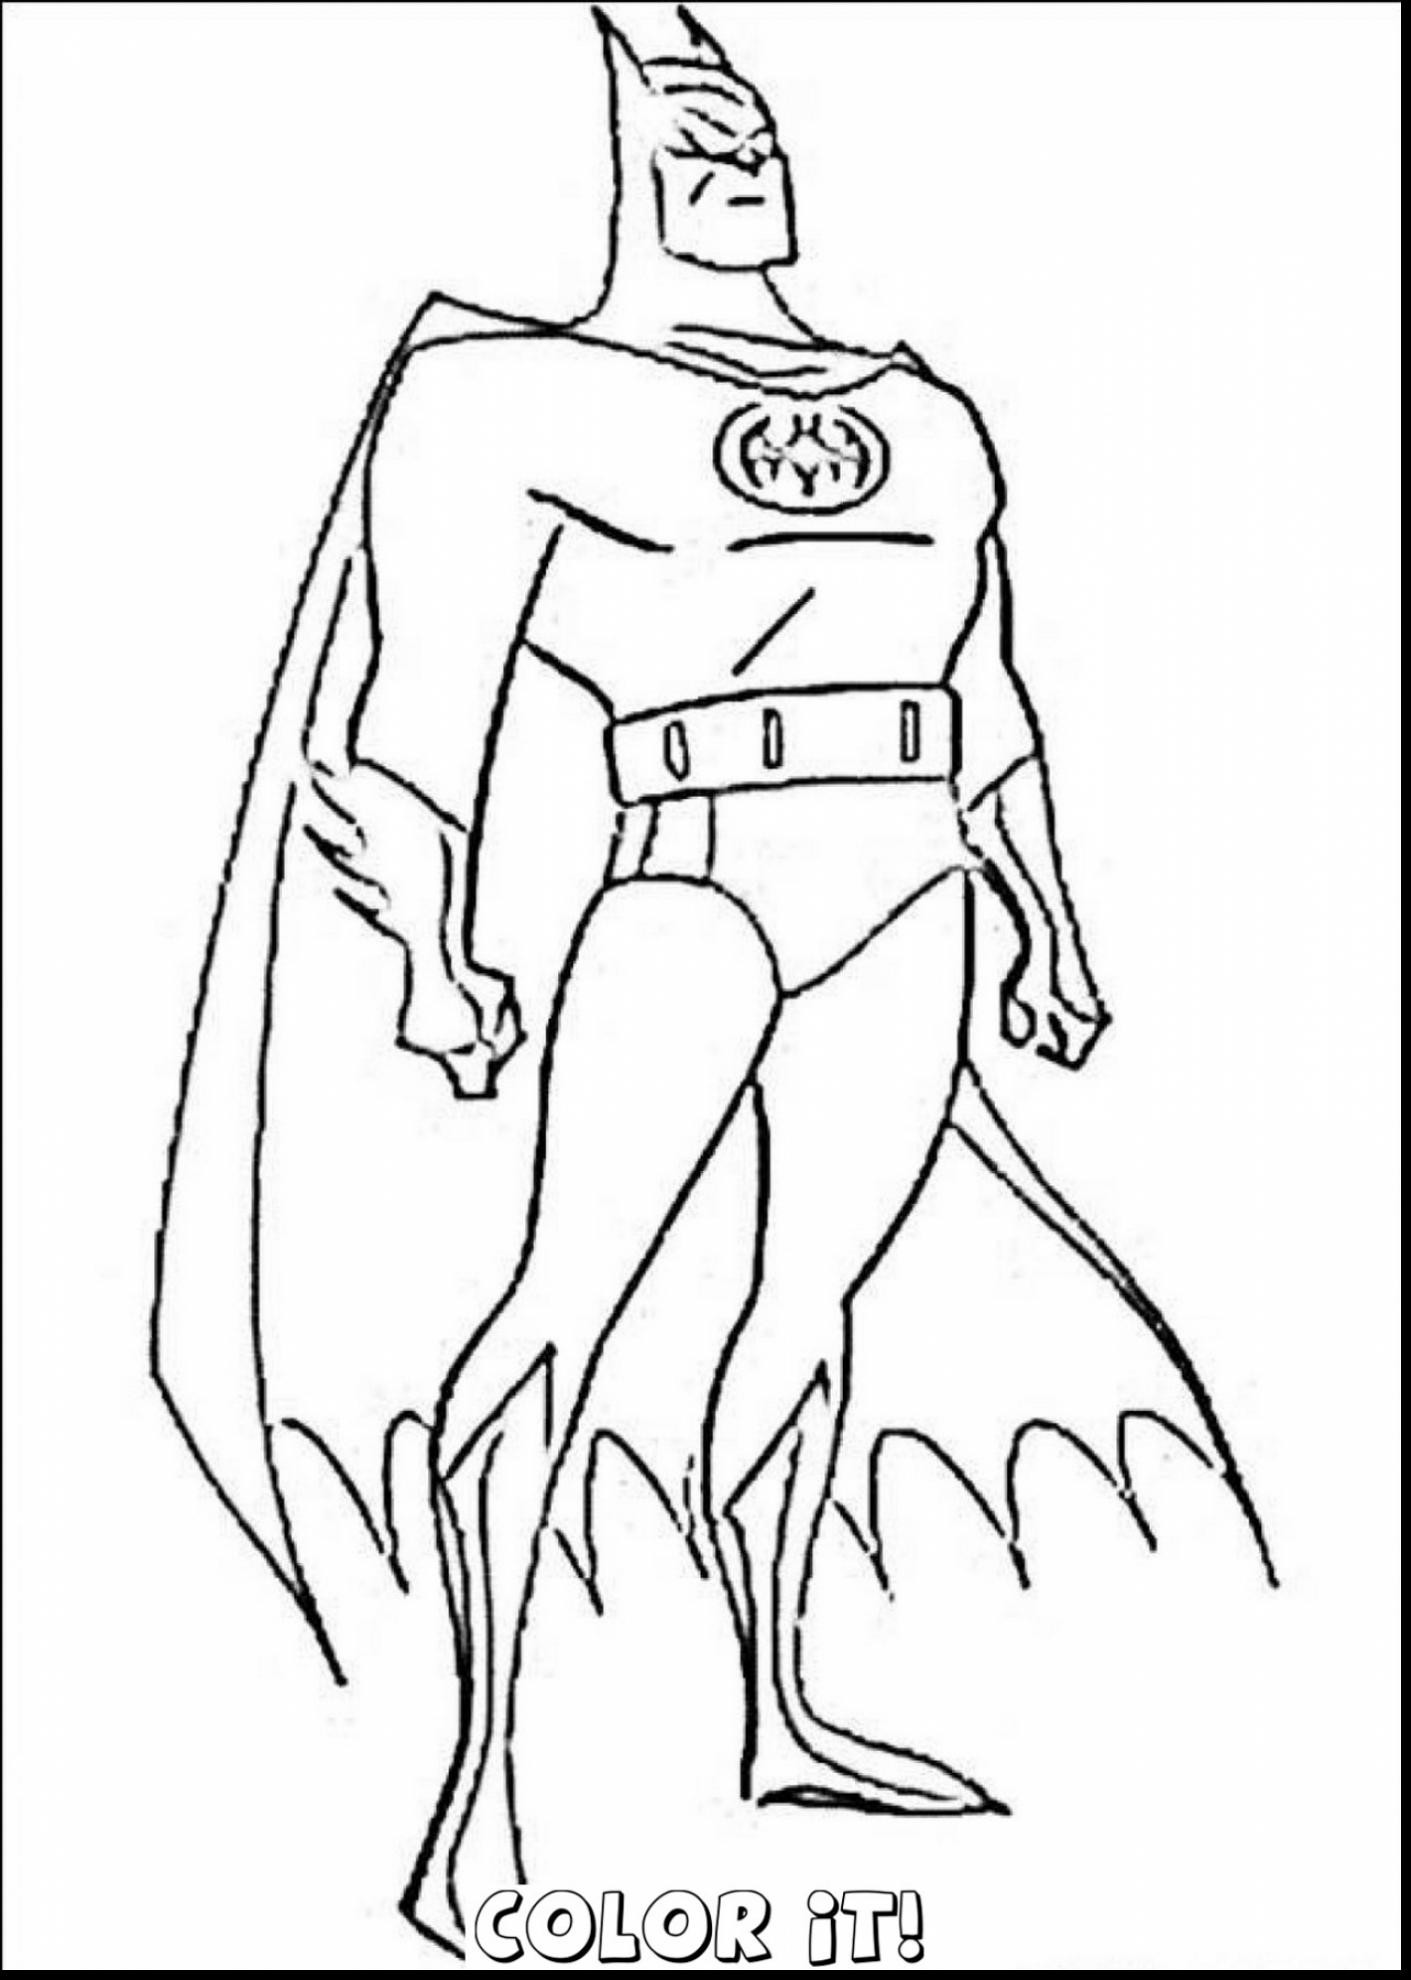 Batman Symbol at GetDrawings.com | Free for personal use Batman ...